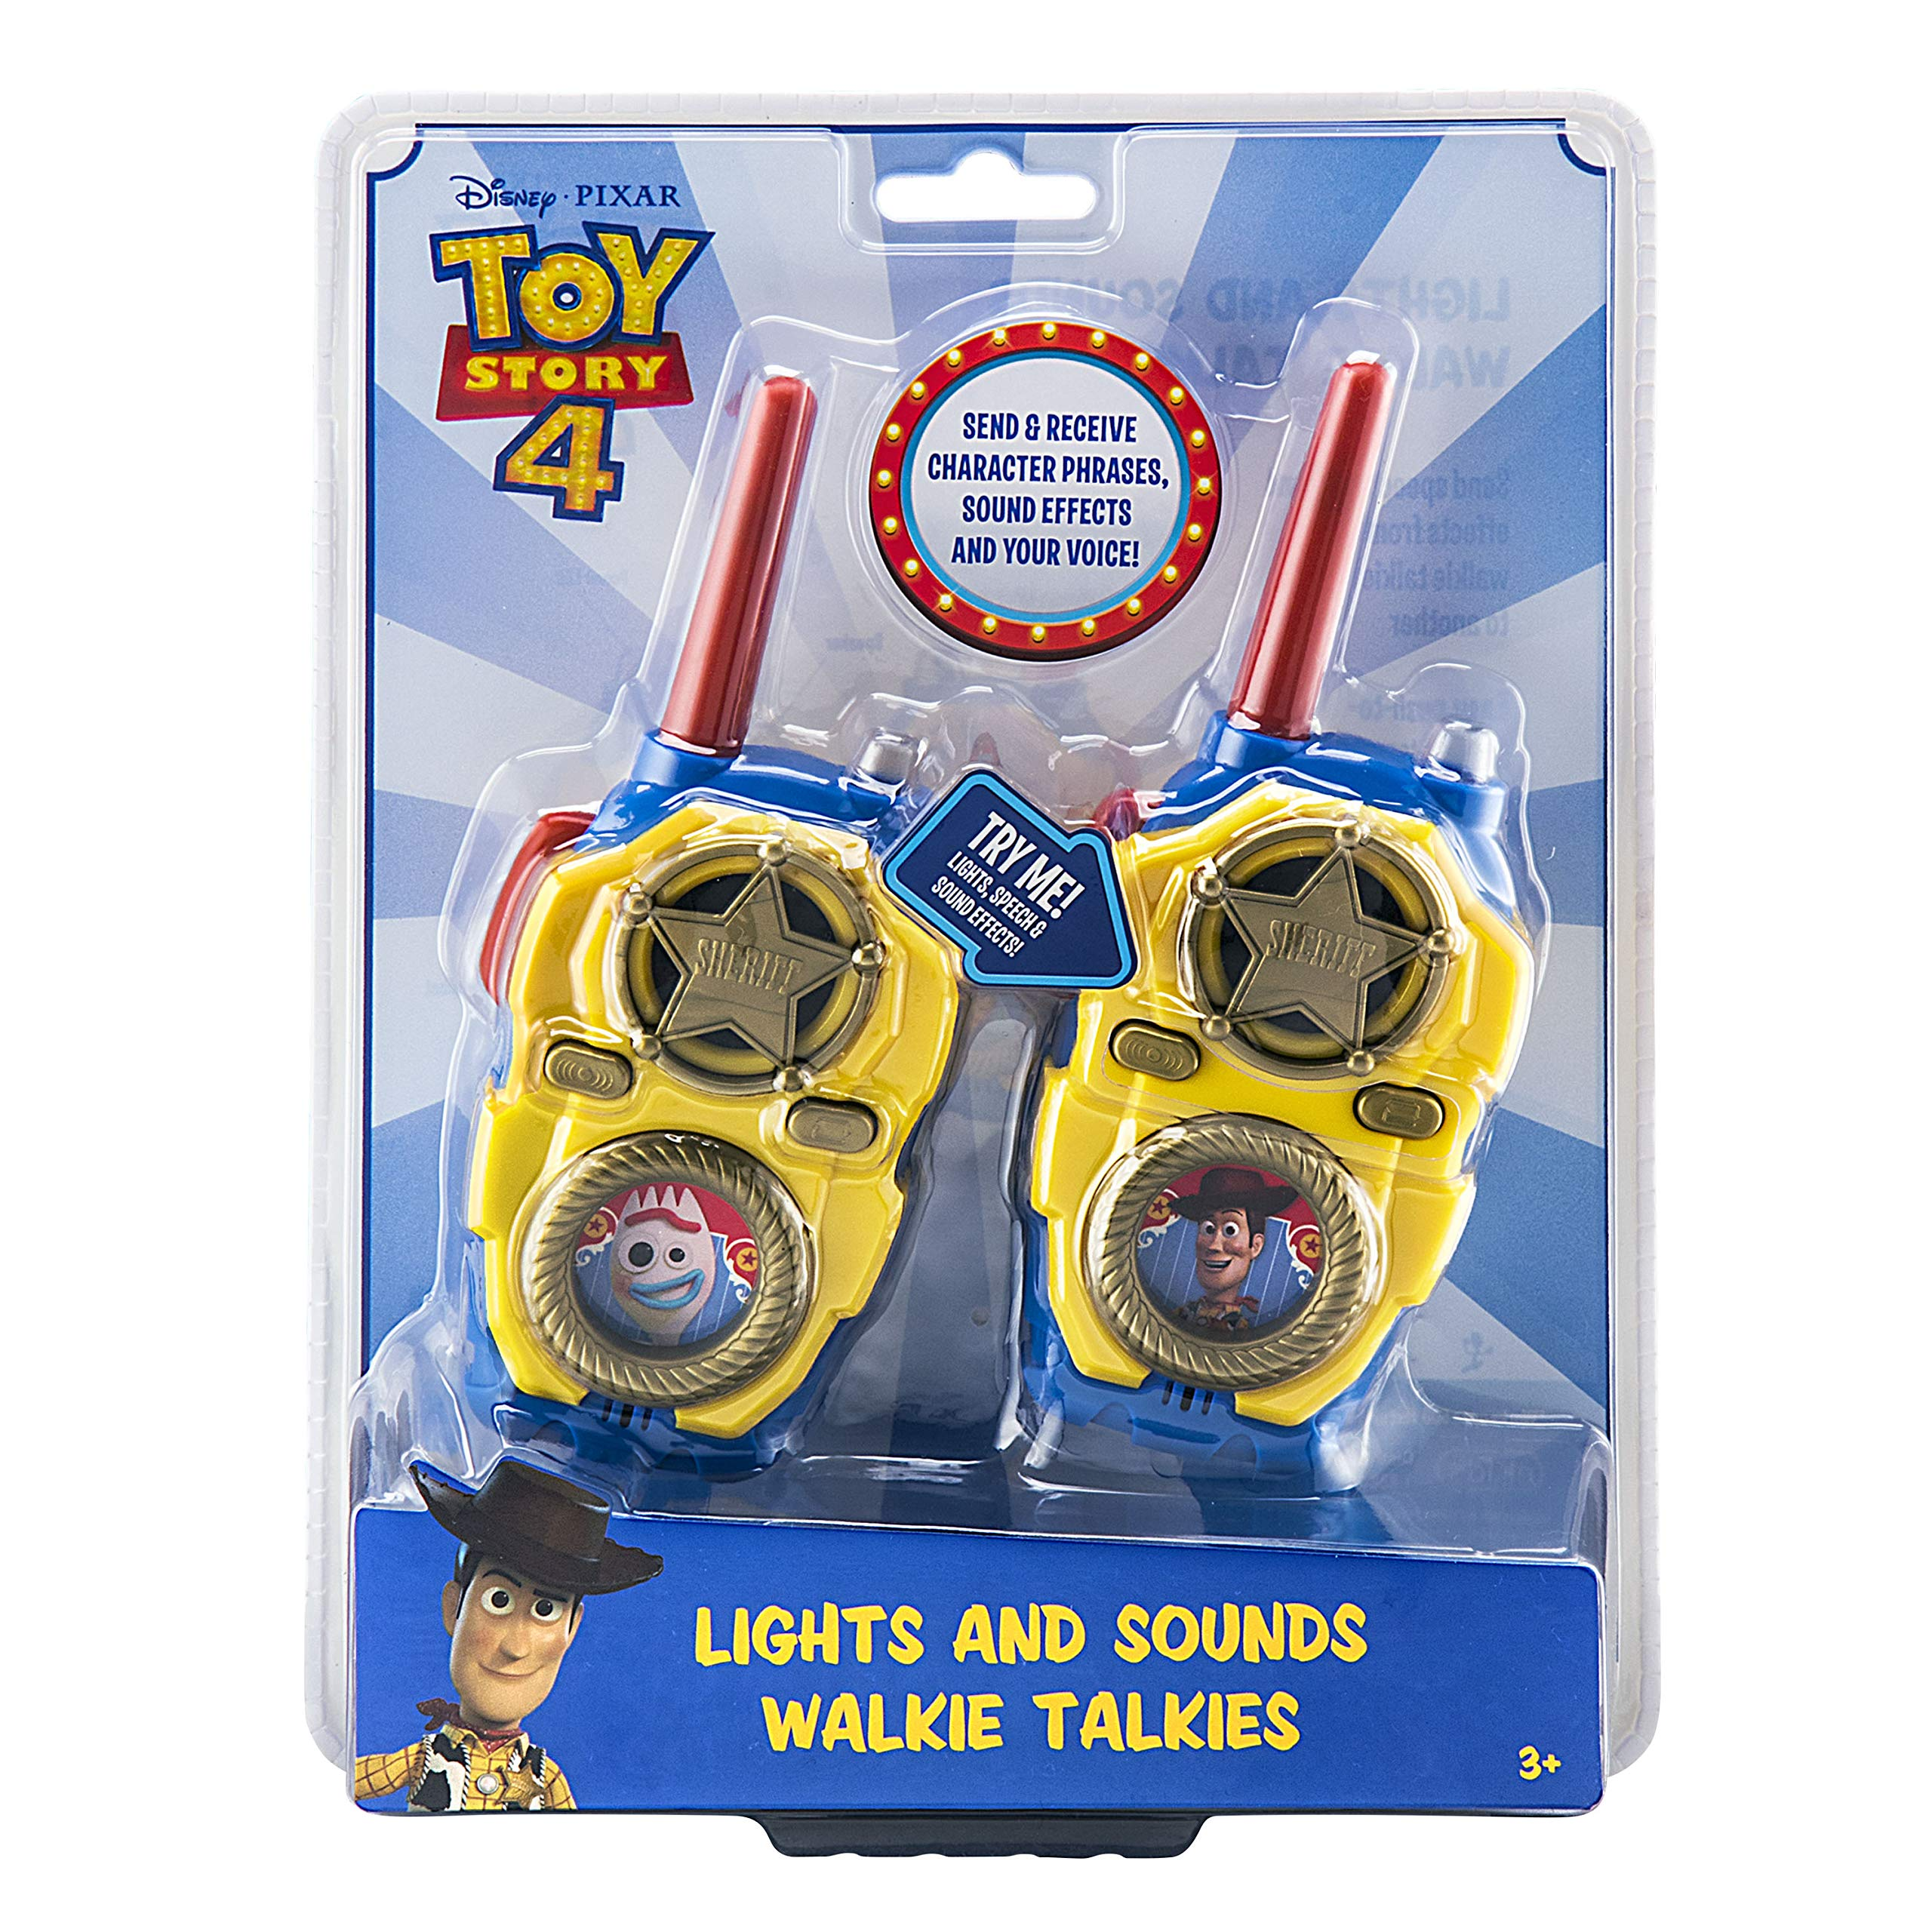 eKids Toy Story 4 FRS Walkie Talkies with Lights and Sounds Kid Friendly Easy to Use by eKids (Image #5)